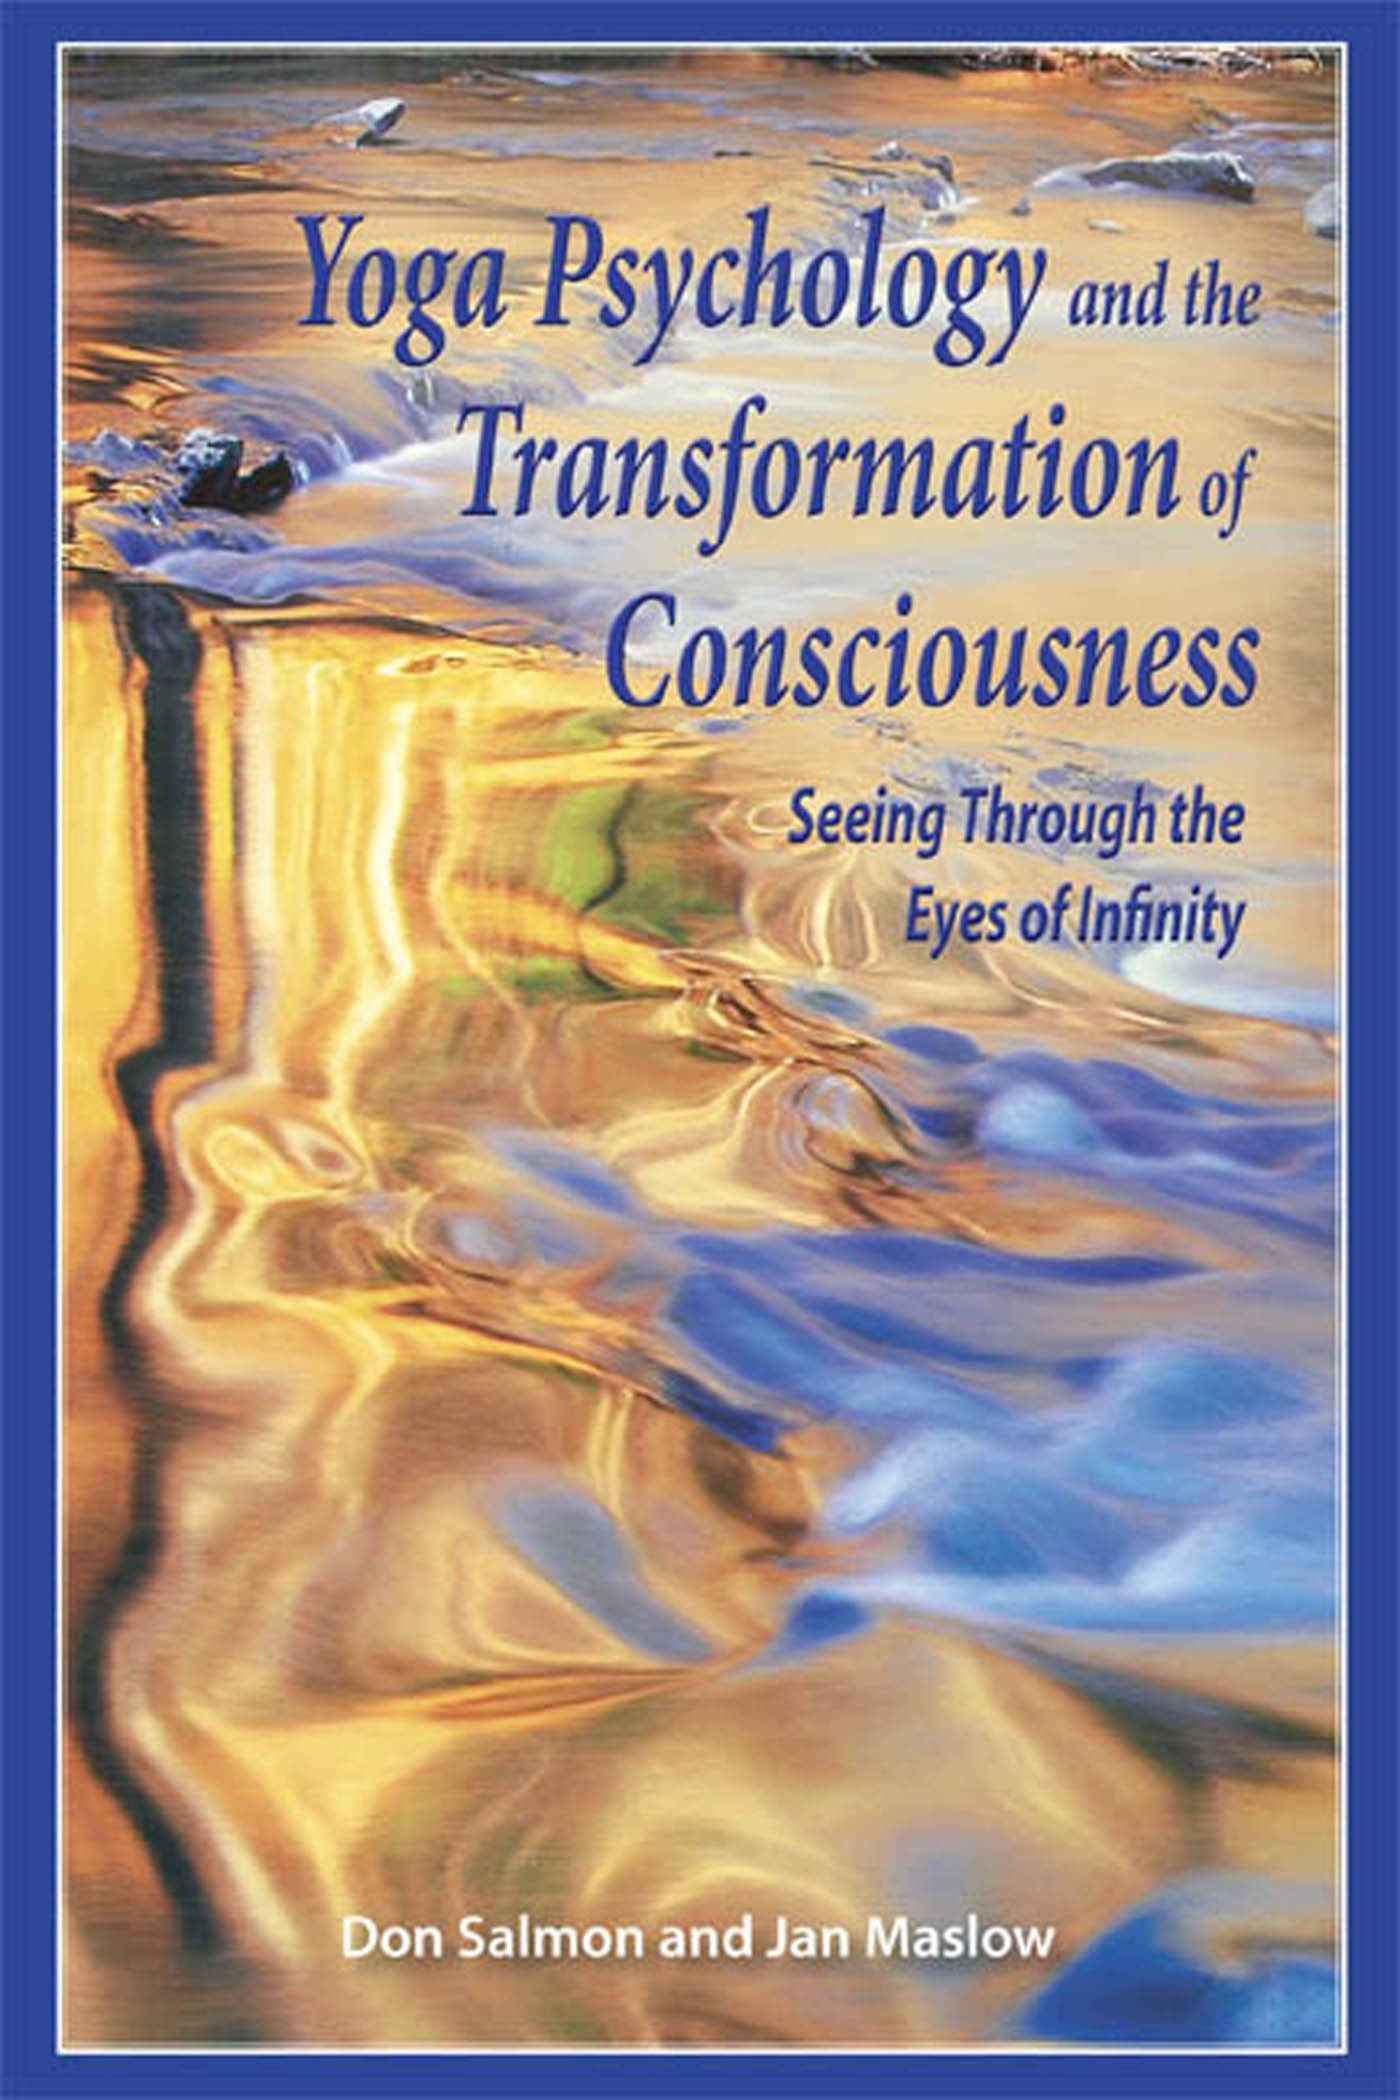 Yoga Psychology And The Transformation Of Consciousness: Seeing Through The  Eyes Of Infinity: Don Salmon, Jan Maslow: 9781557788351: Amazon: Books